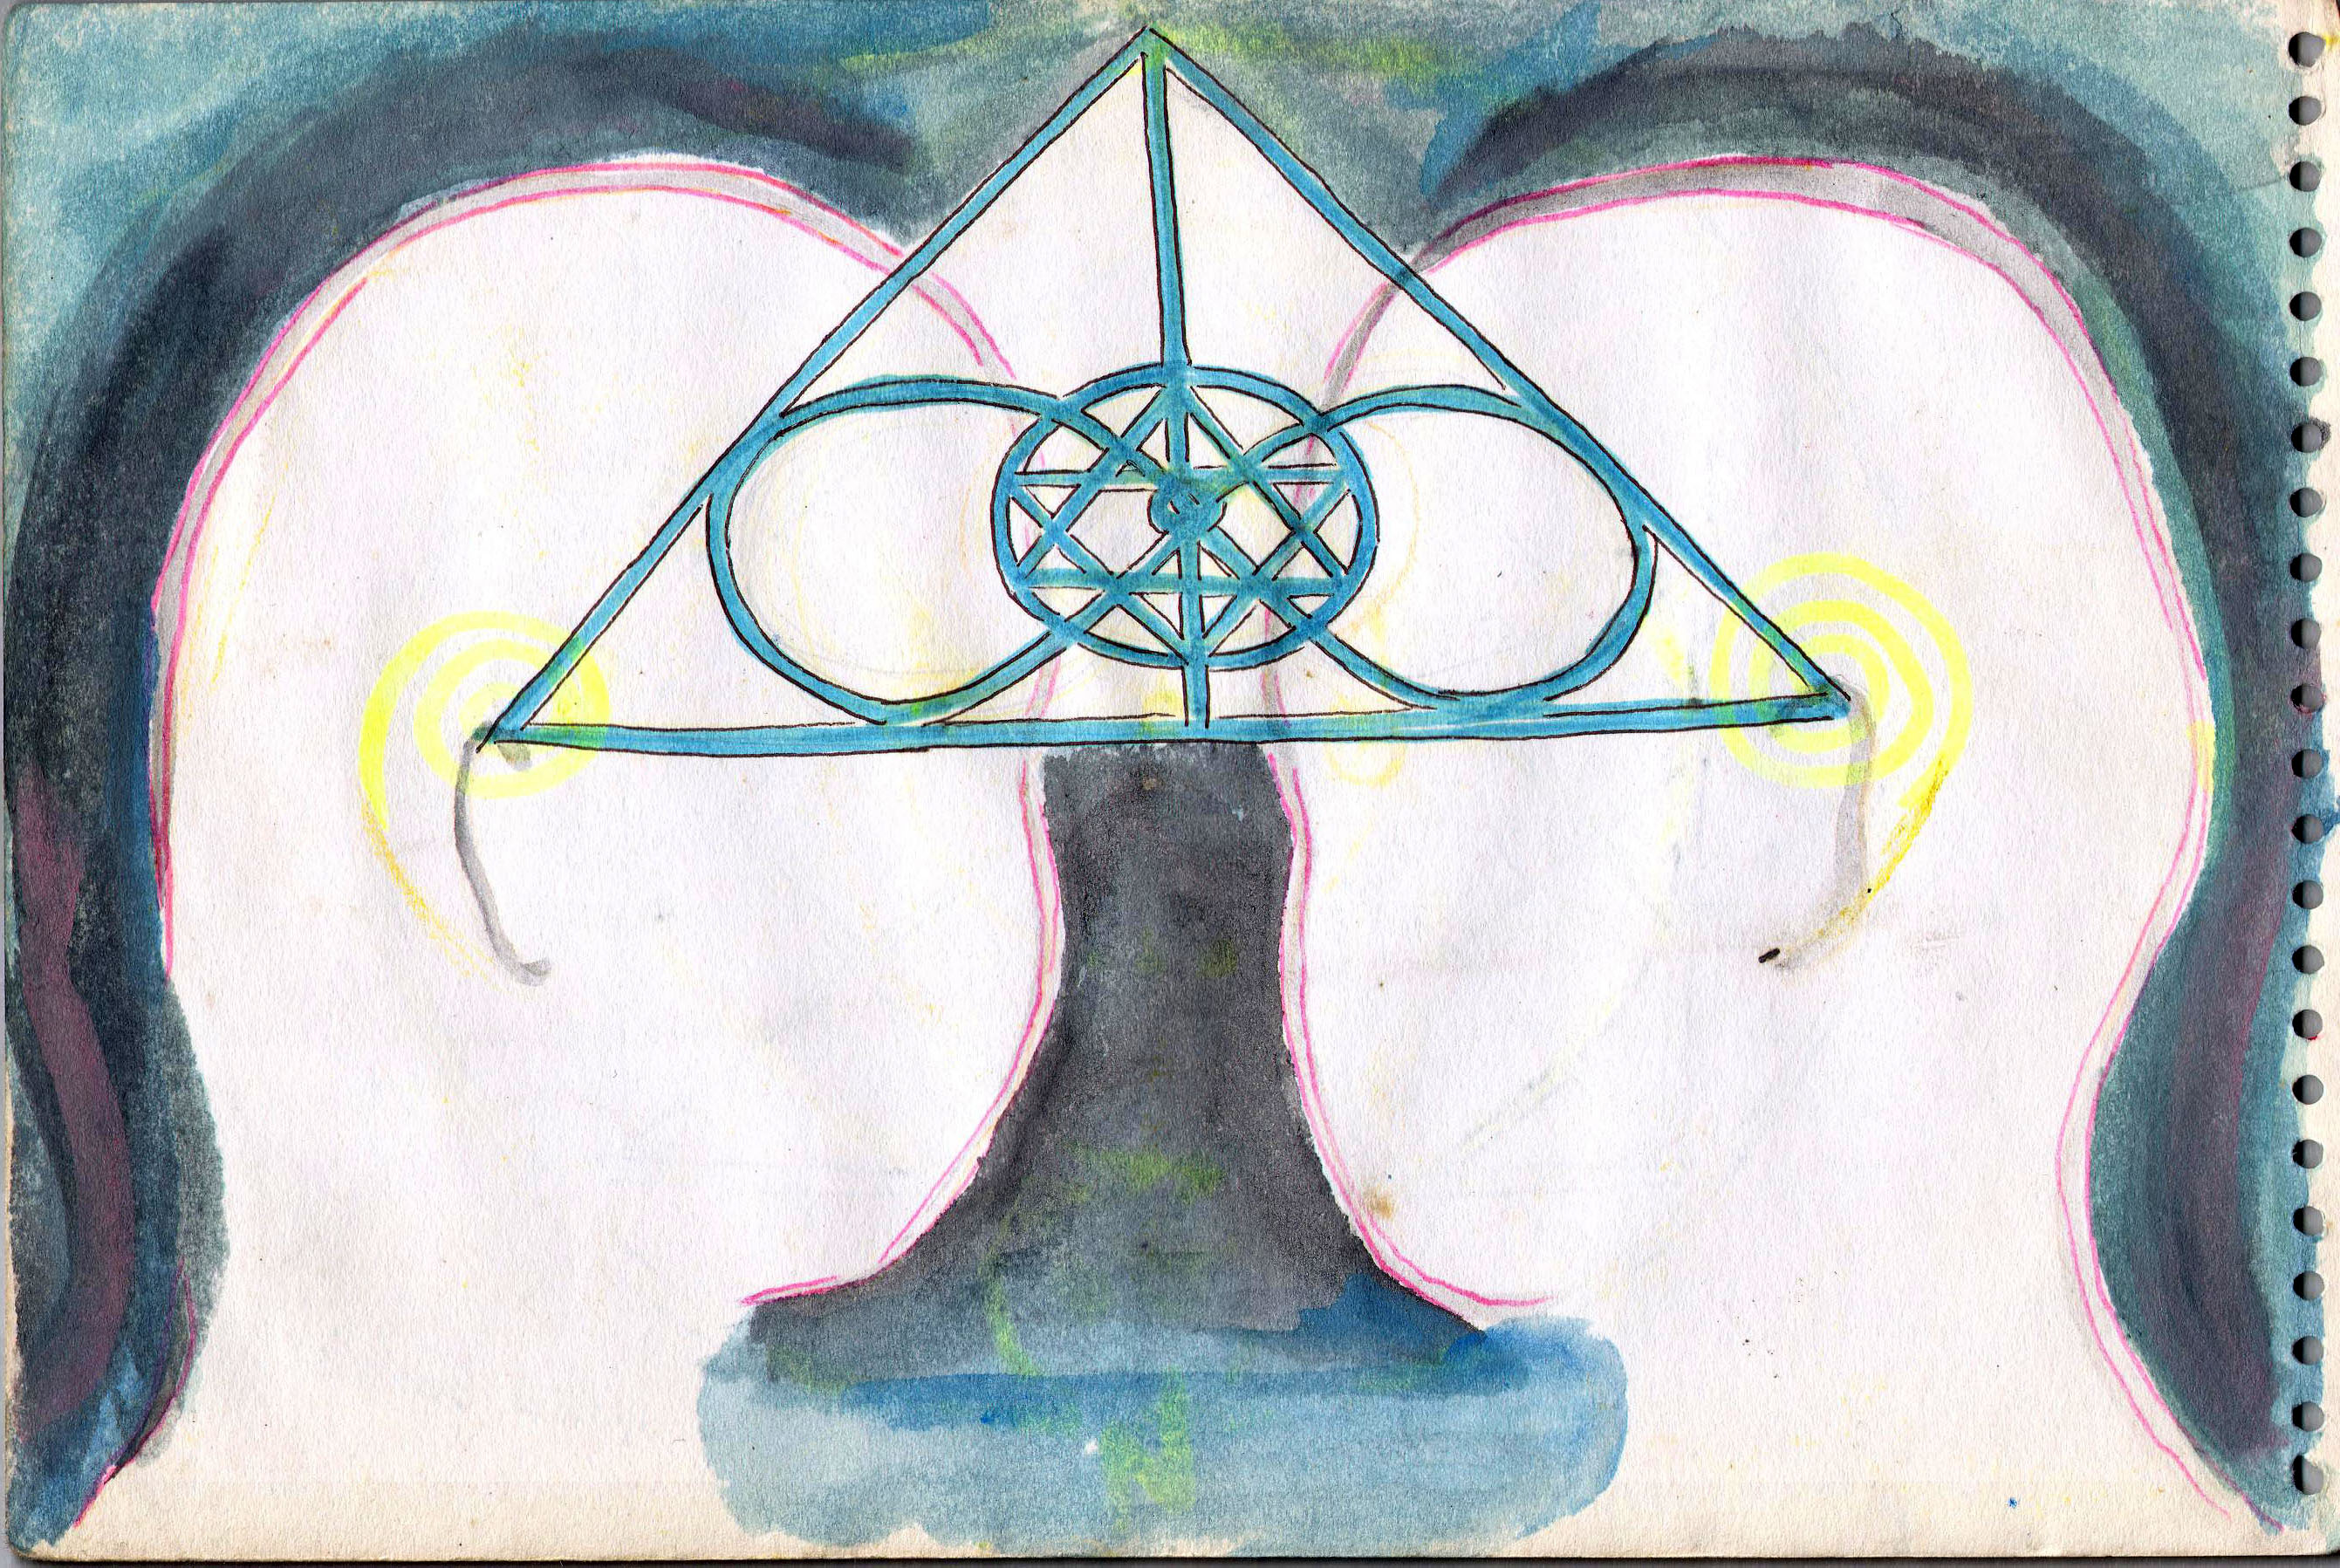 Sketches from the source by a Philippine shaman Bong Delatorre 12